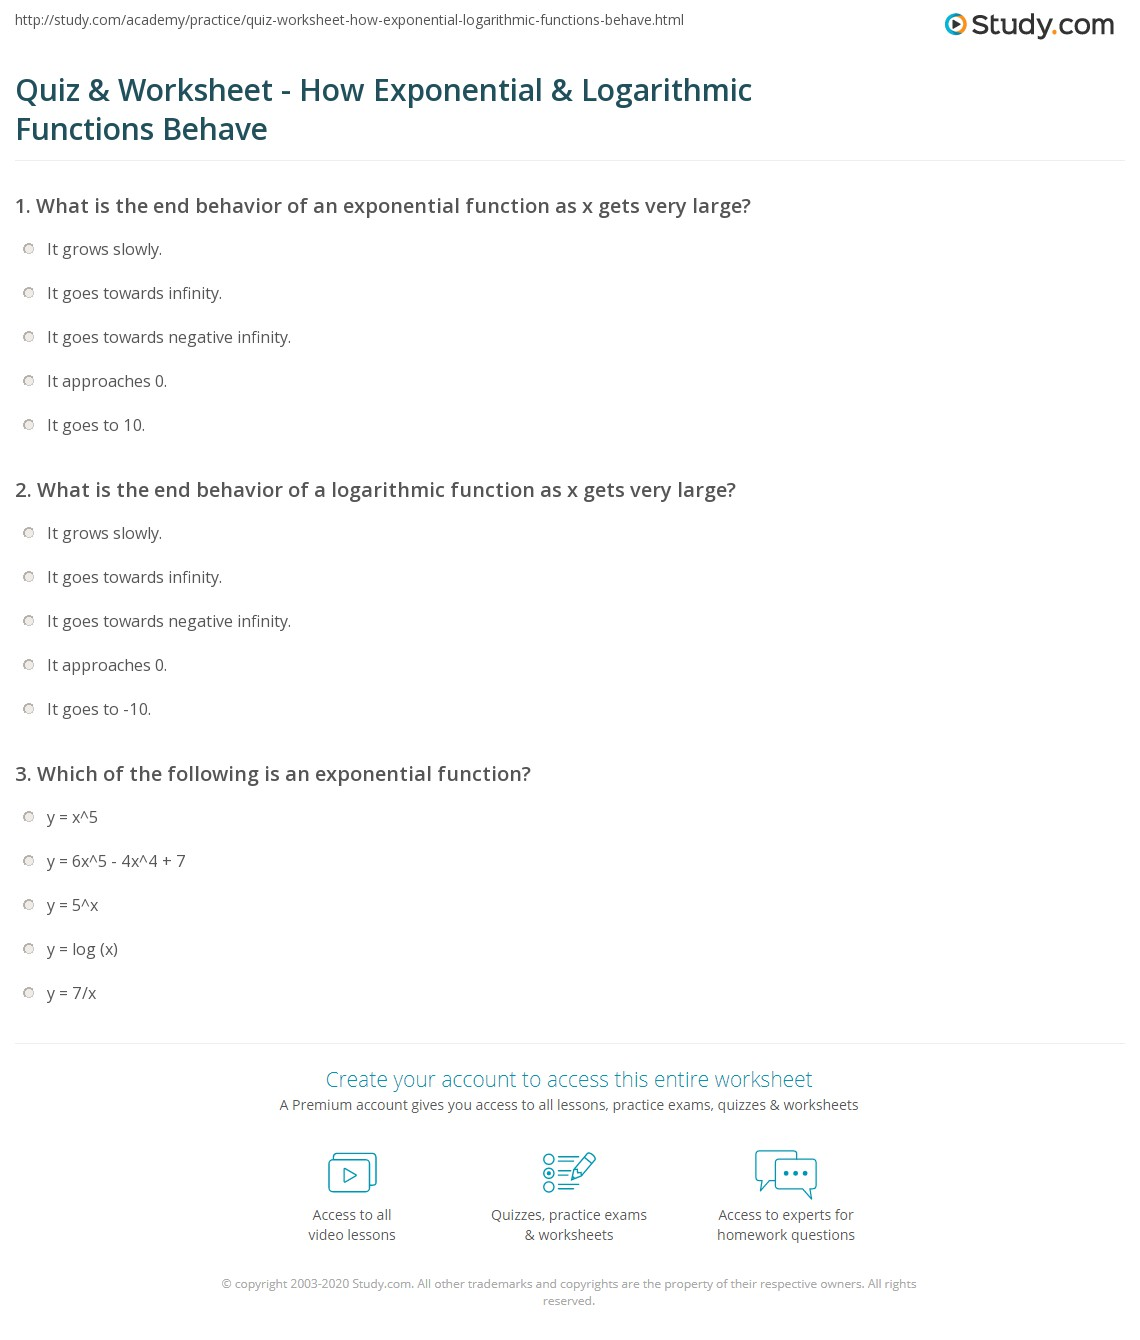 Worksheets Exponential And Logarithmic Functions Worksheet quiz worksheet how exponential logarithmic functions behave print behavior of and worksheet